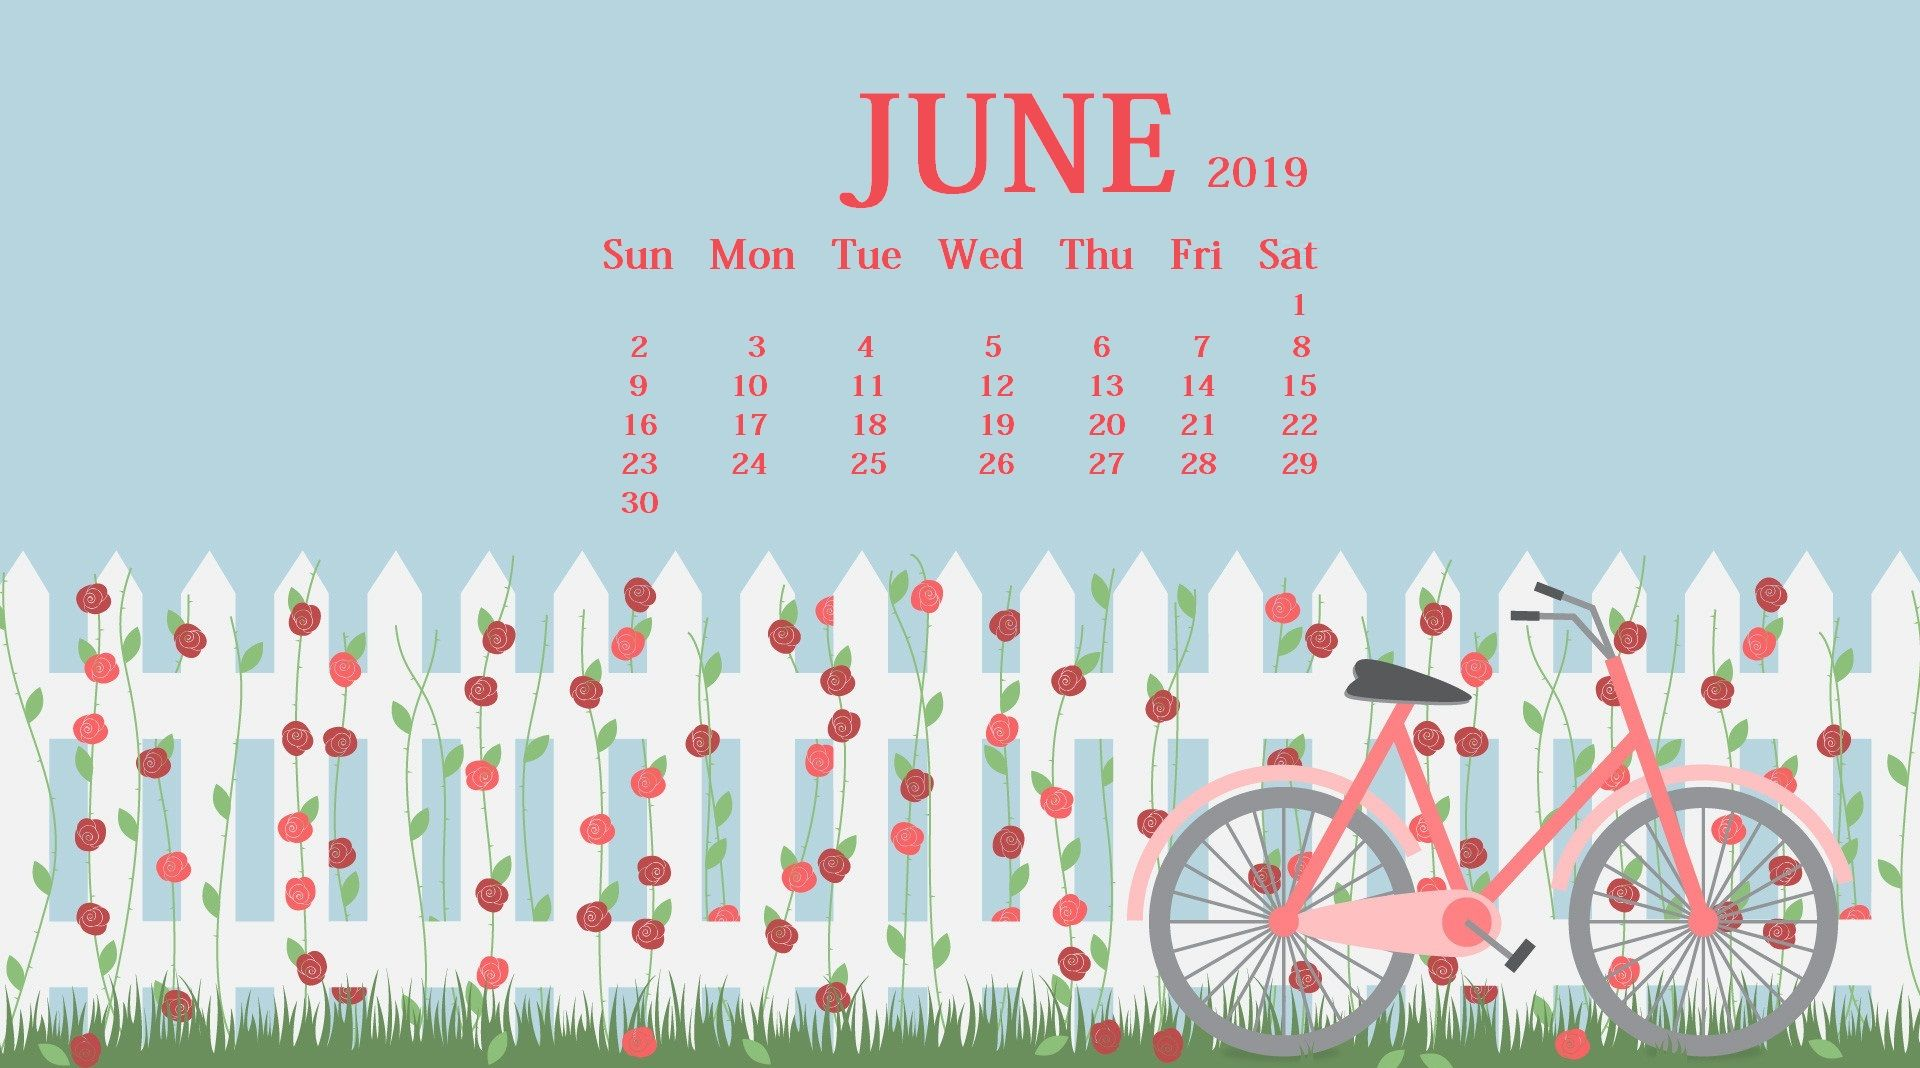 Waterproof June 2019 Calendar Wallpaper For Desktop Iphone 1920x1068